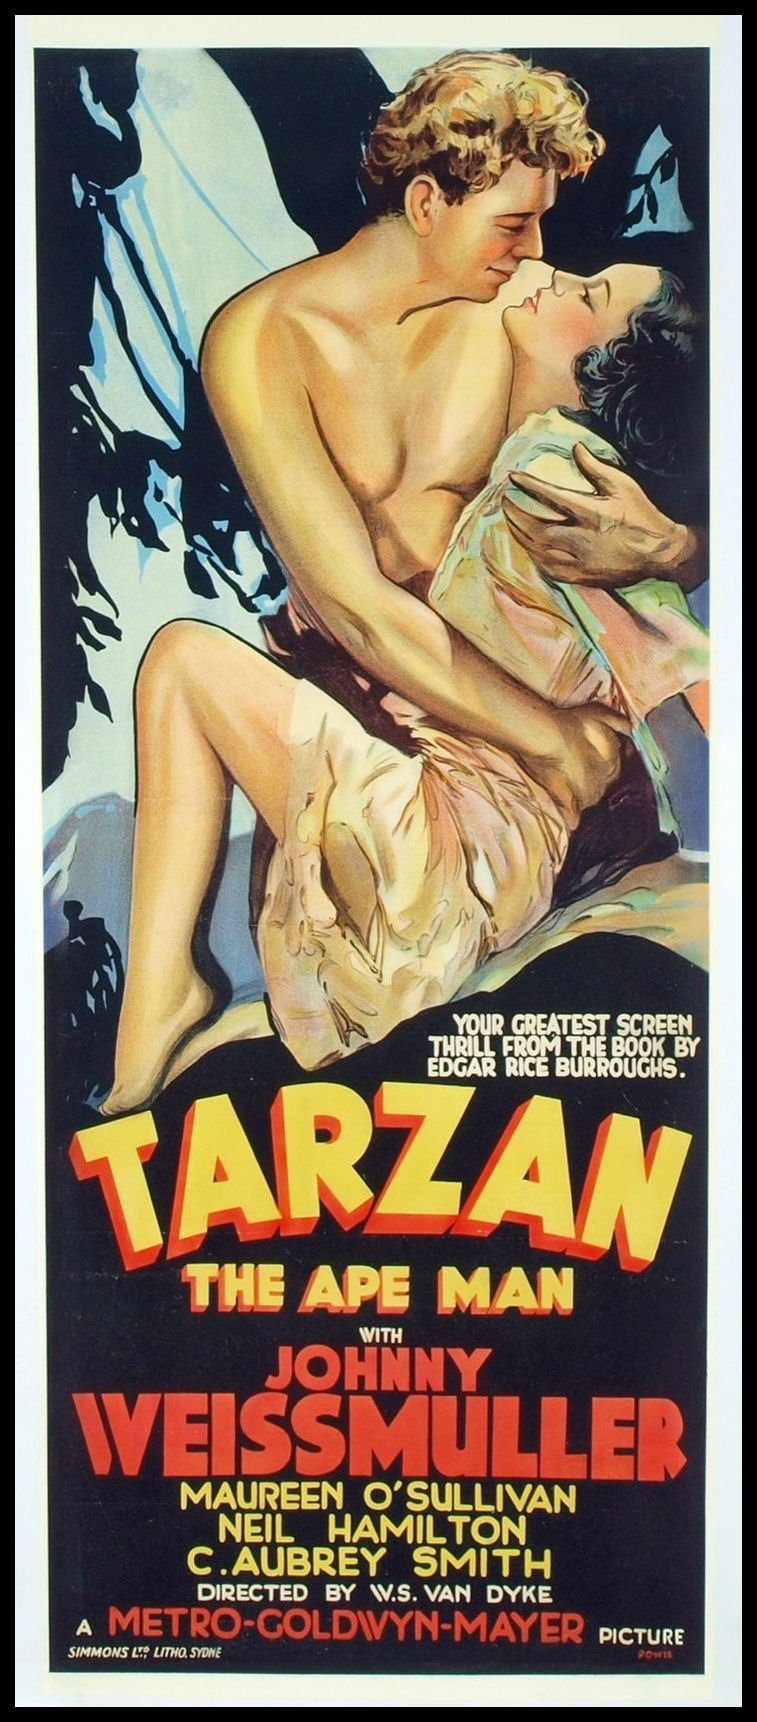 Buy Magnetic Movie Poster Tarzan Ape Man Fridge Magnet Now!